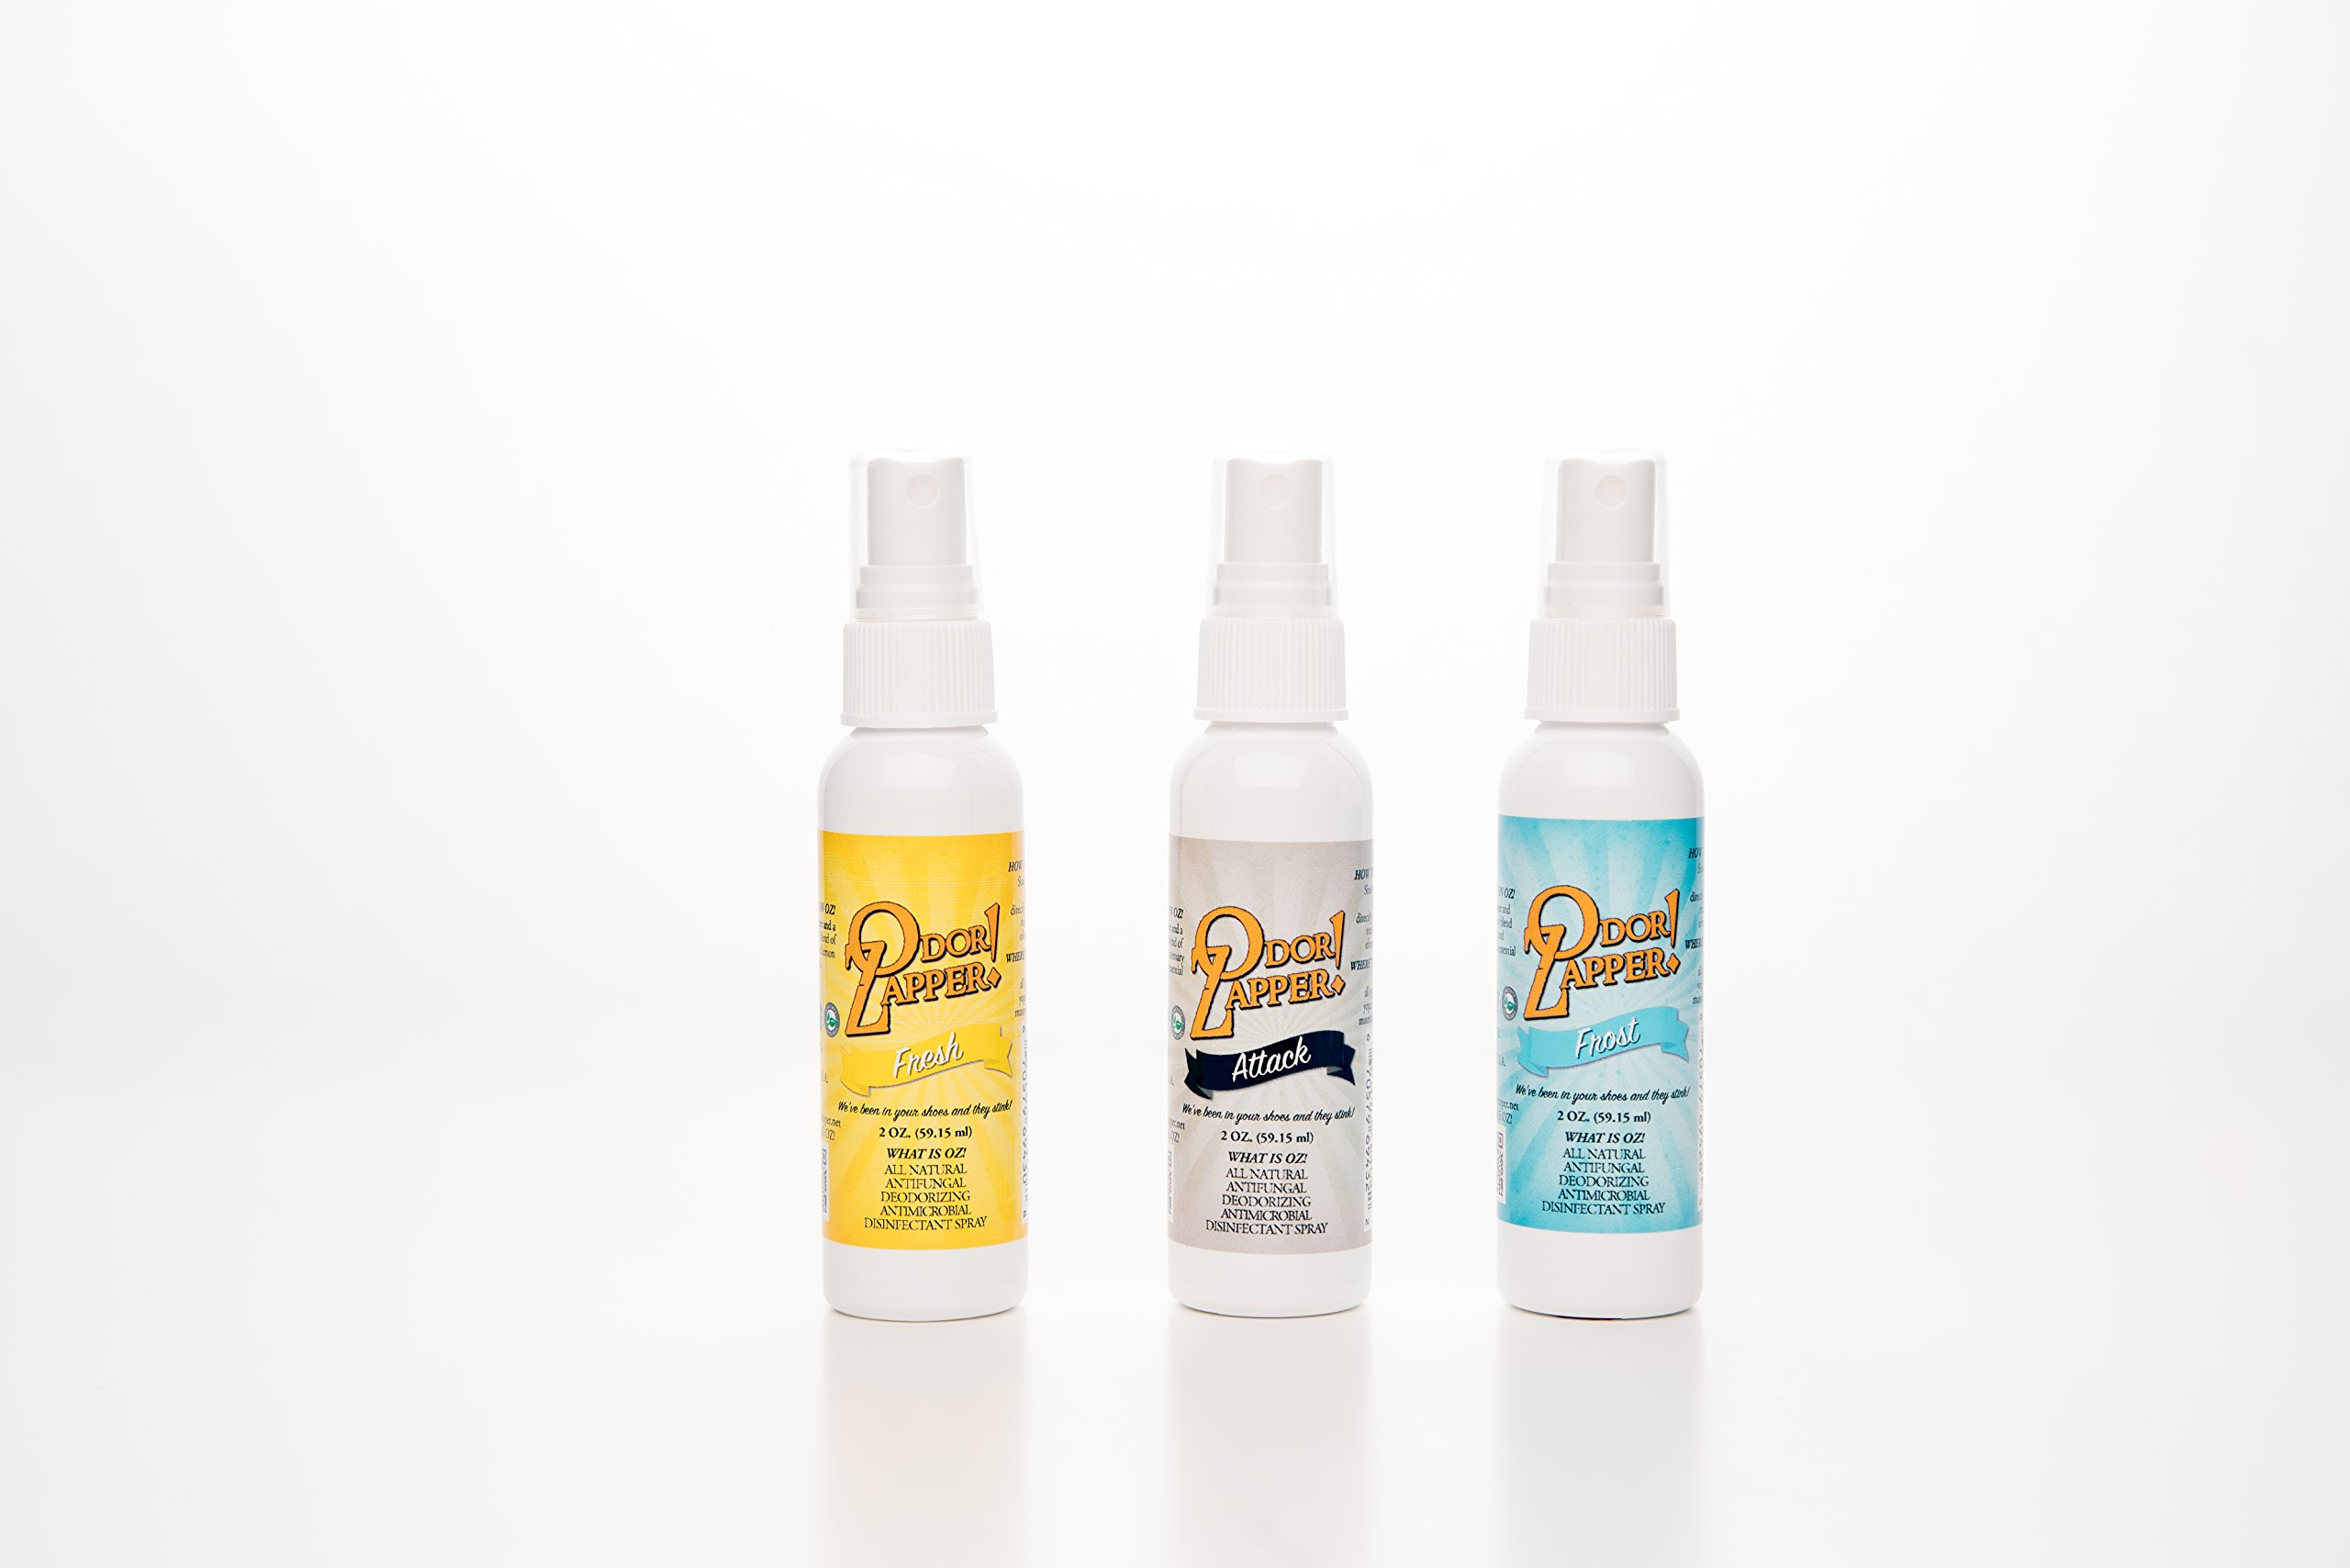 Odor Zapper Disinfectant Spray - For use in Shoes, Gym Bags, Yoga Mats, Kid's Cars and More! - ''Attack Pack'' - 3 Pack - 2 Ounce Bottles.